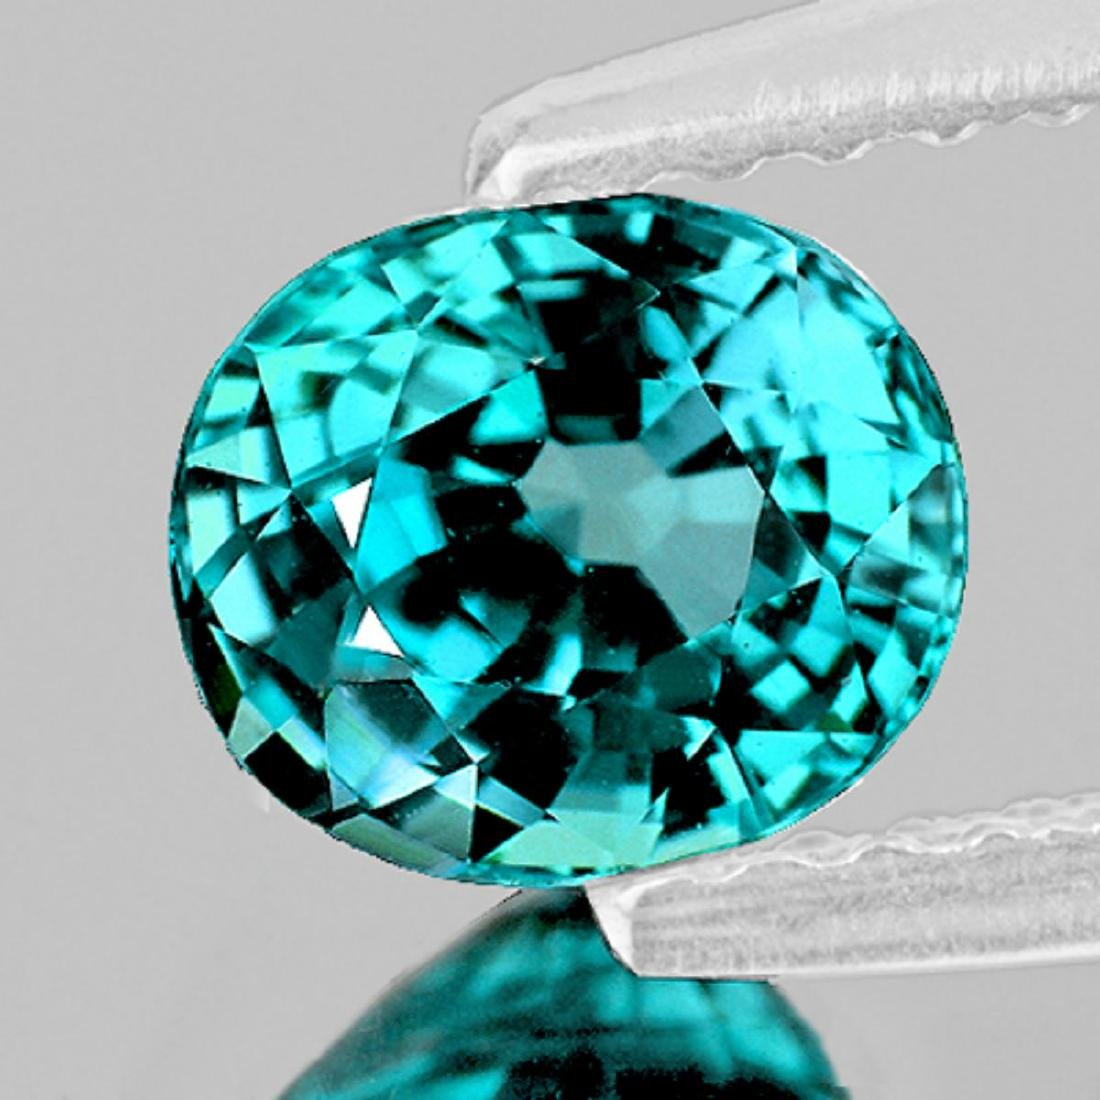 Natural Electric Blue Zircon 4.75 Ct - Flawless